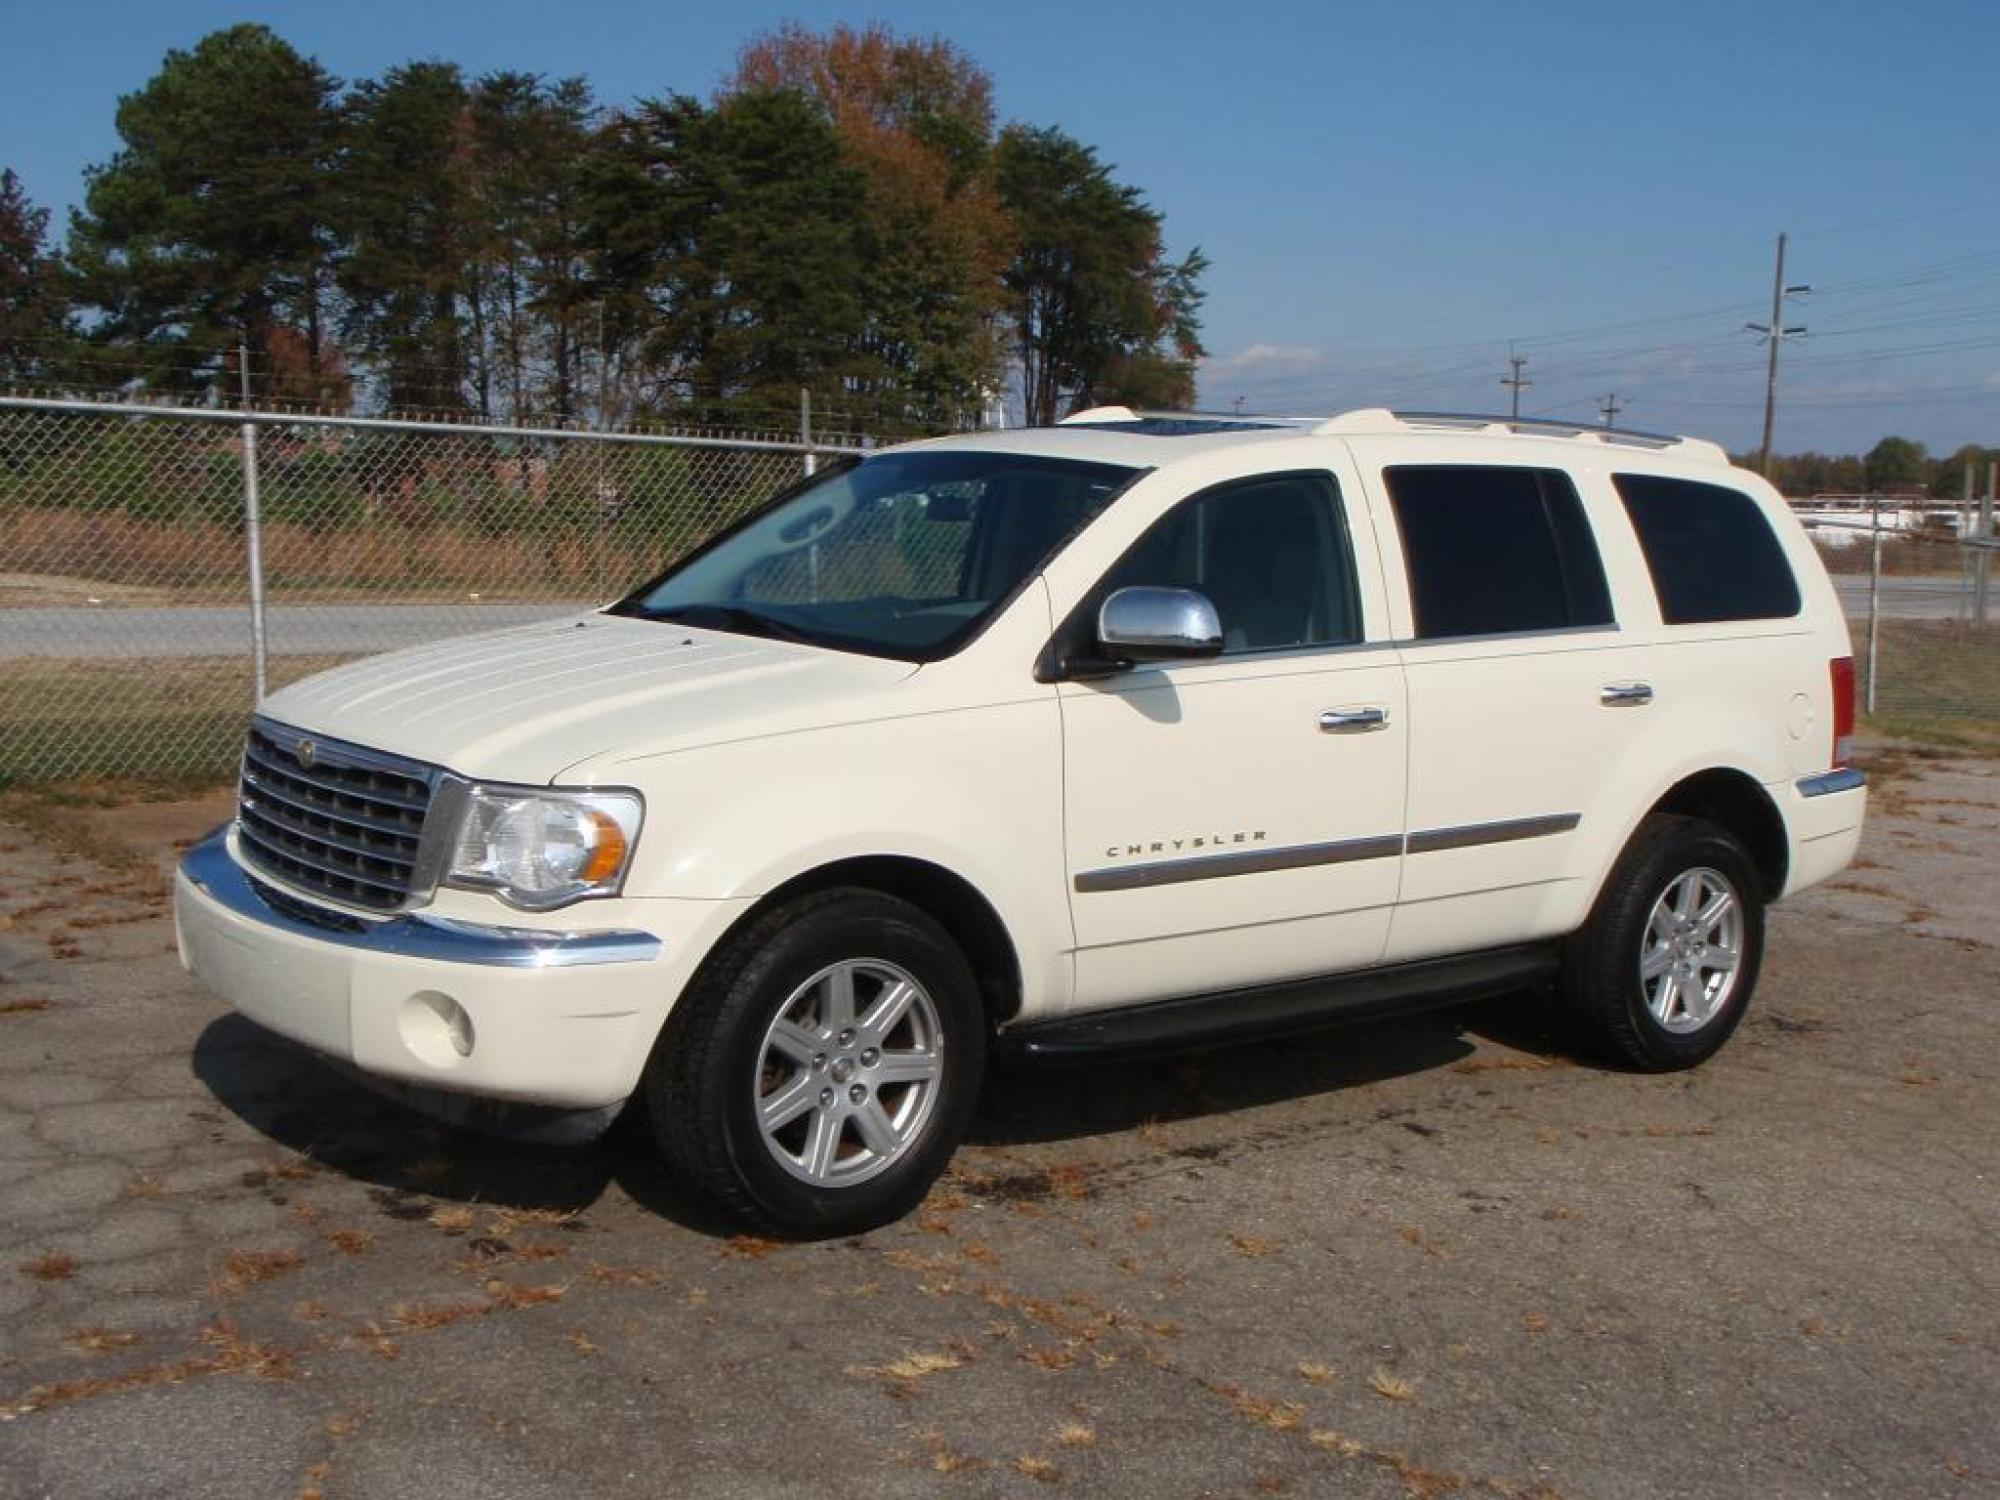 2007 Chrysler ASPEN LIMITED SUV WHITE GRAY LEATHER 4-WHEEL ANTI-LOCK DISC BRAKESPWR GLASS SUNRO